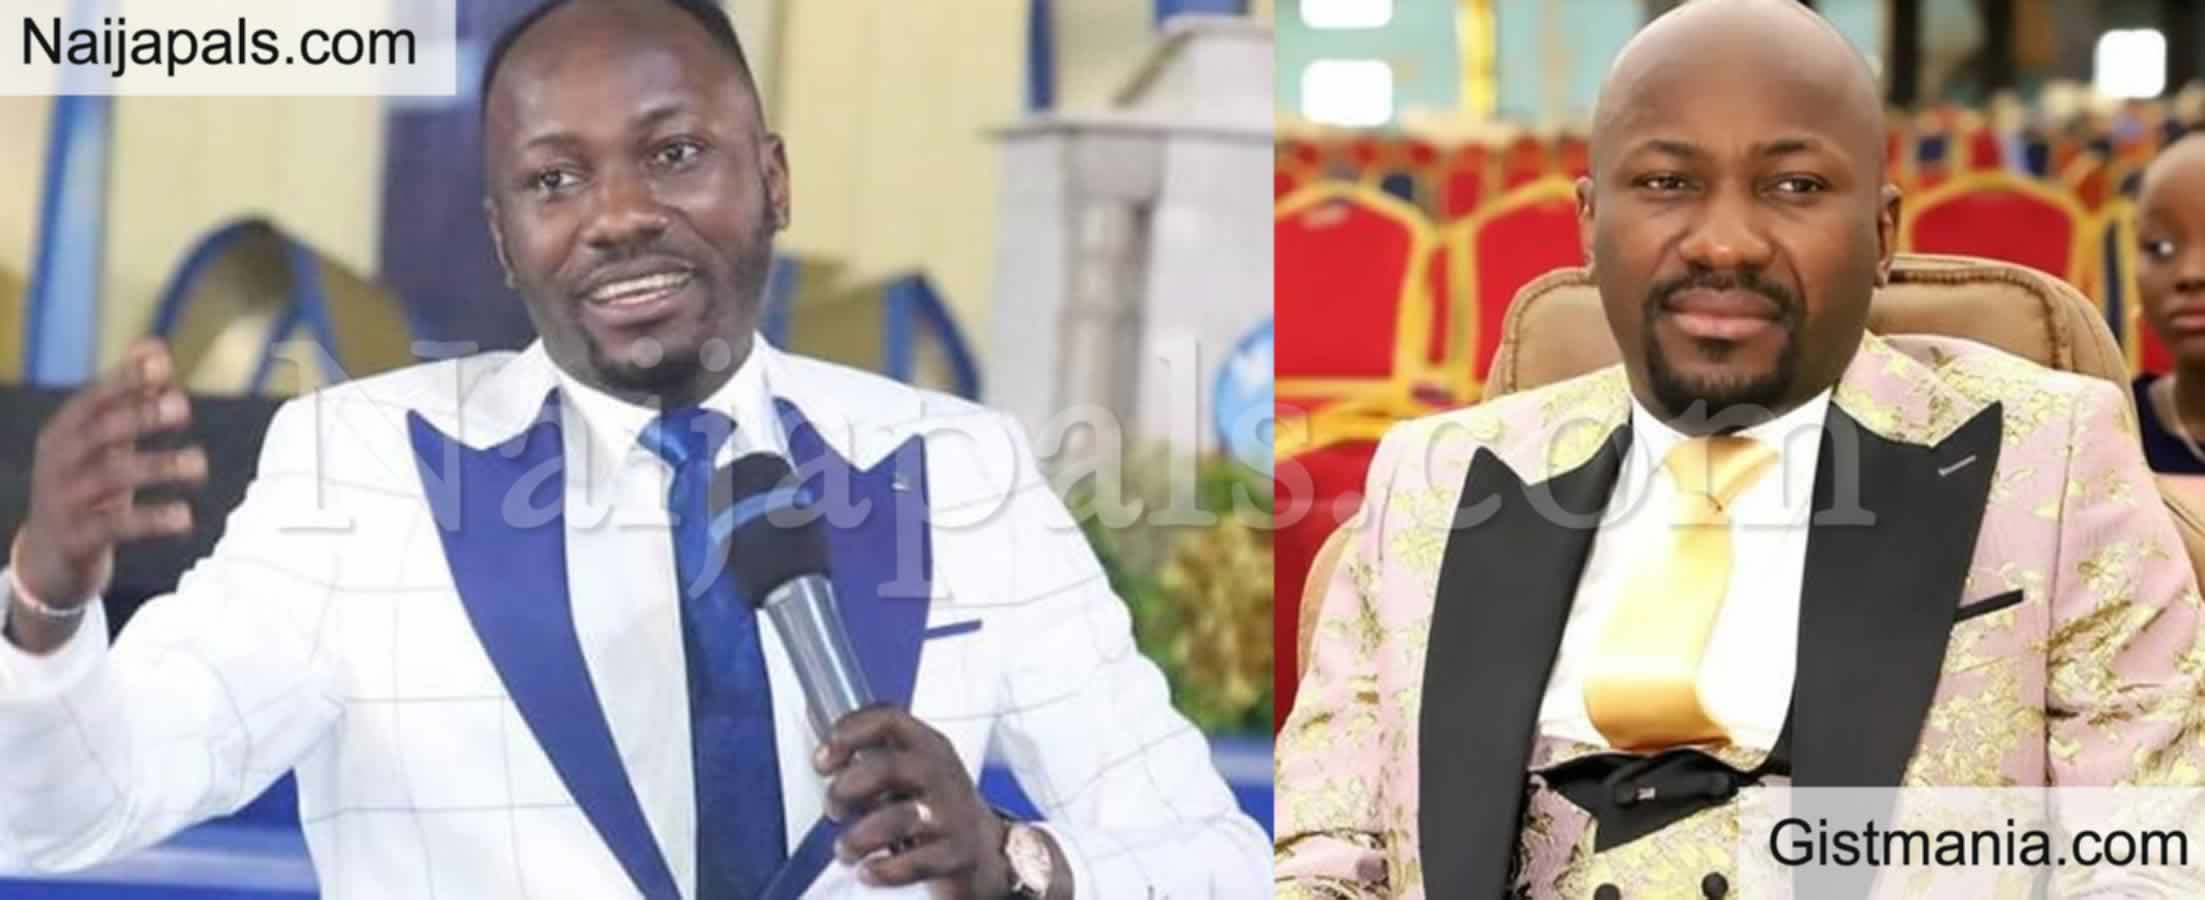 <img alt='.' class='lazyload' data-src='https://img.gistmania.com/emot/news.gif' /> <b>Apostle Suleman In Another Messy S*x Scandal As IGP Orders Investigation</b>